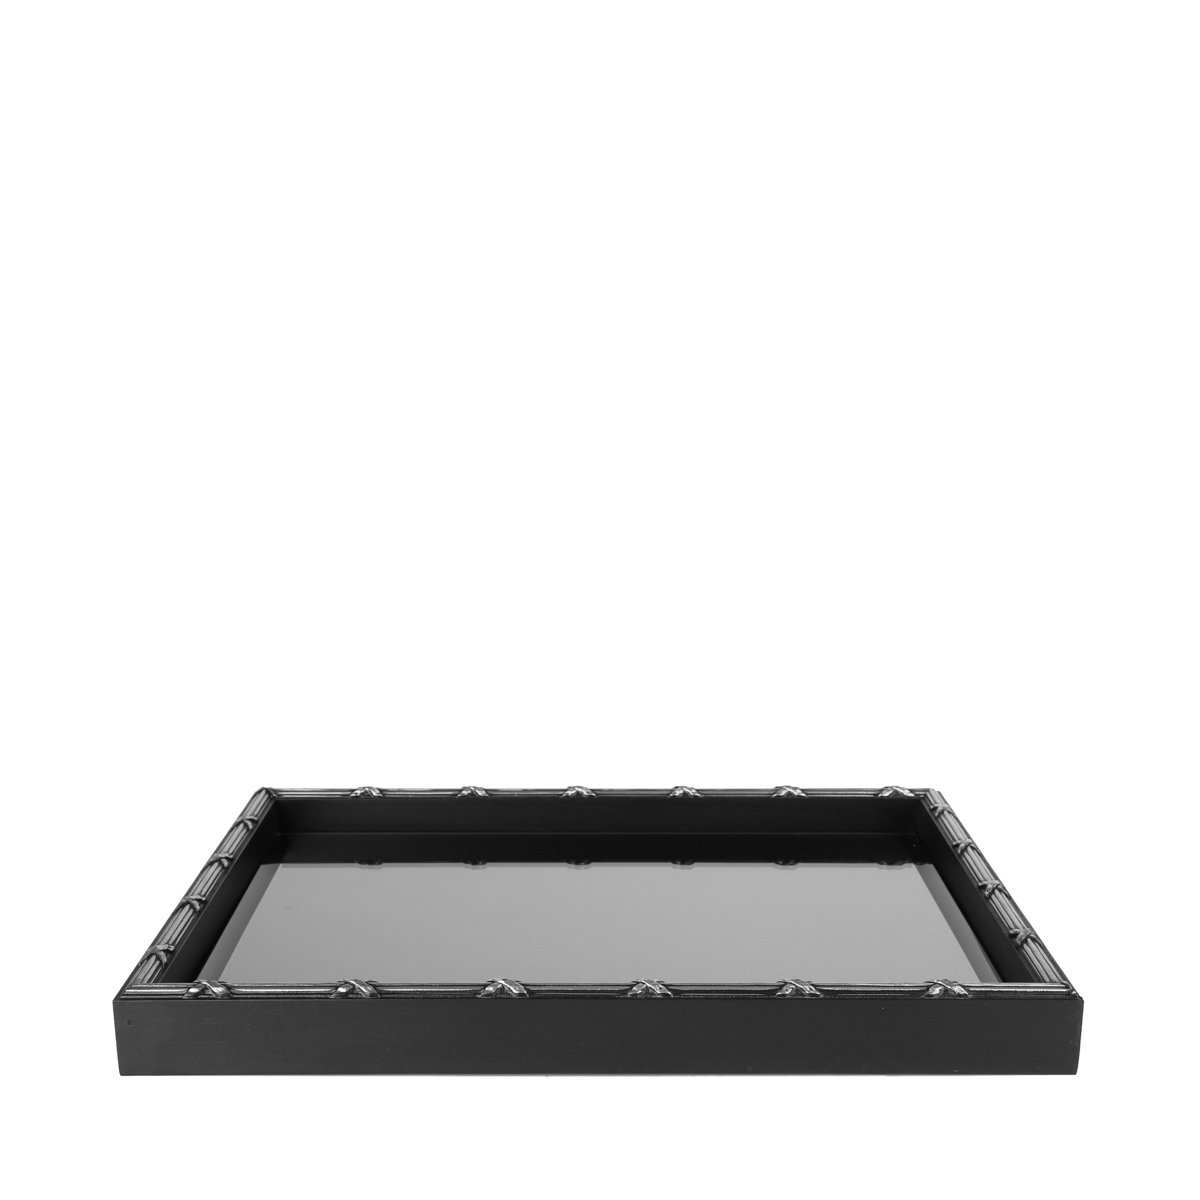 Woodart Croisé Wooden Serving Tray with Handles (Black, 15x11) by Wood Art (Image #1)